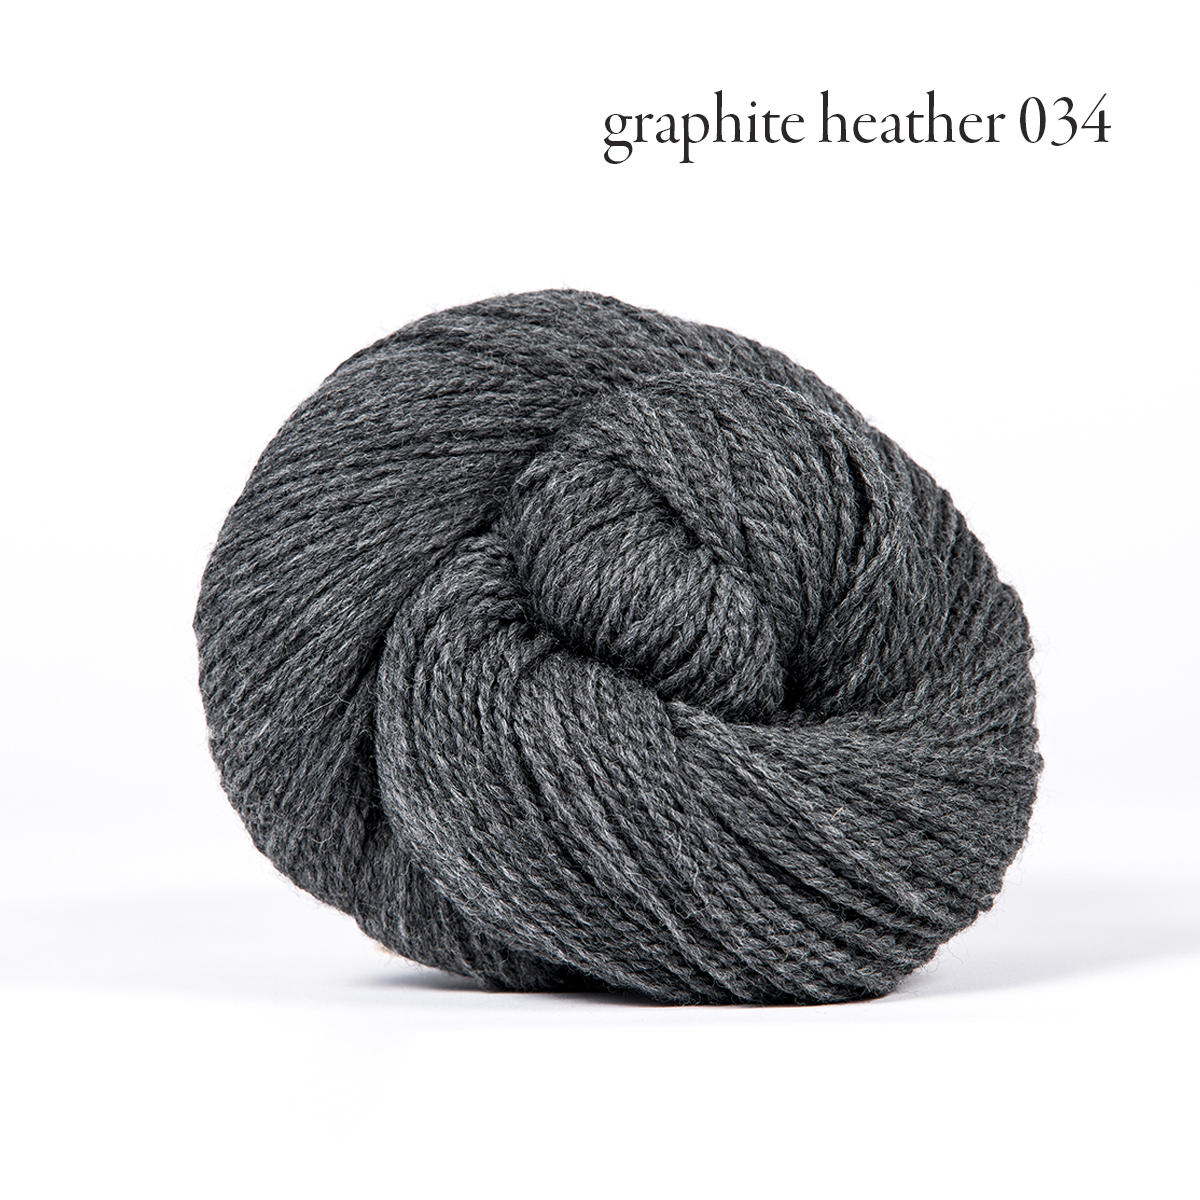 graphite heather 034.jpg